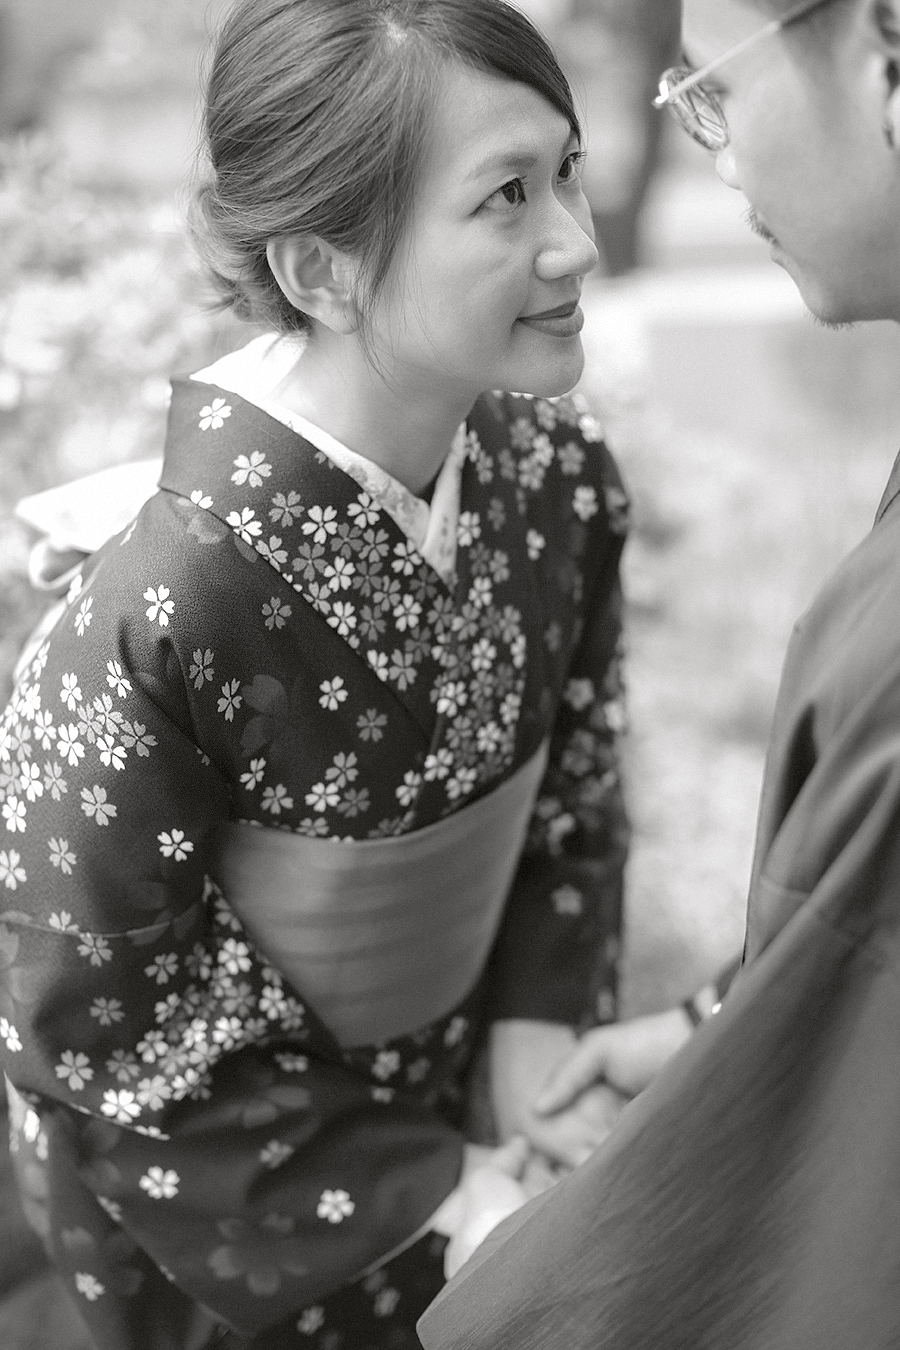 tokyo hakone japan spring sakura . engagement wedding photography by kurt ahs . ns + eu . 0414.jpg